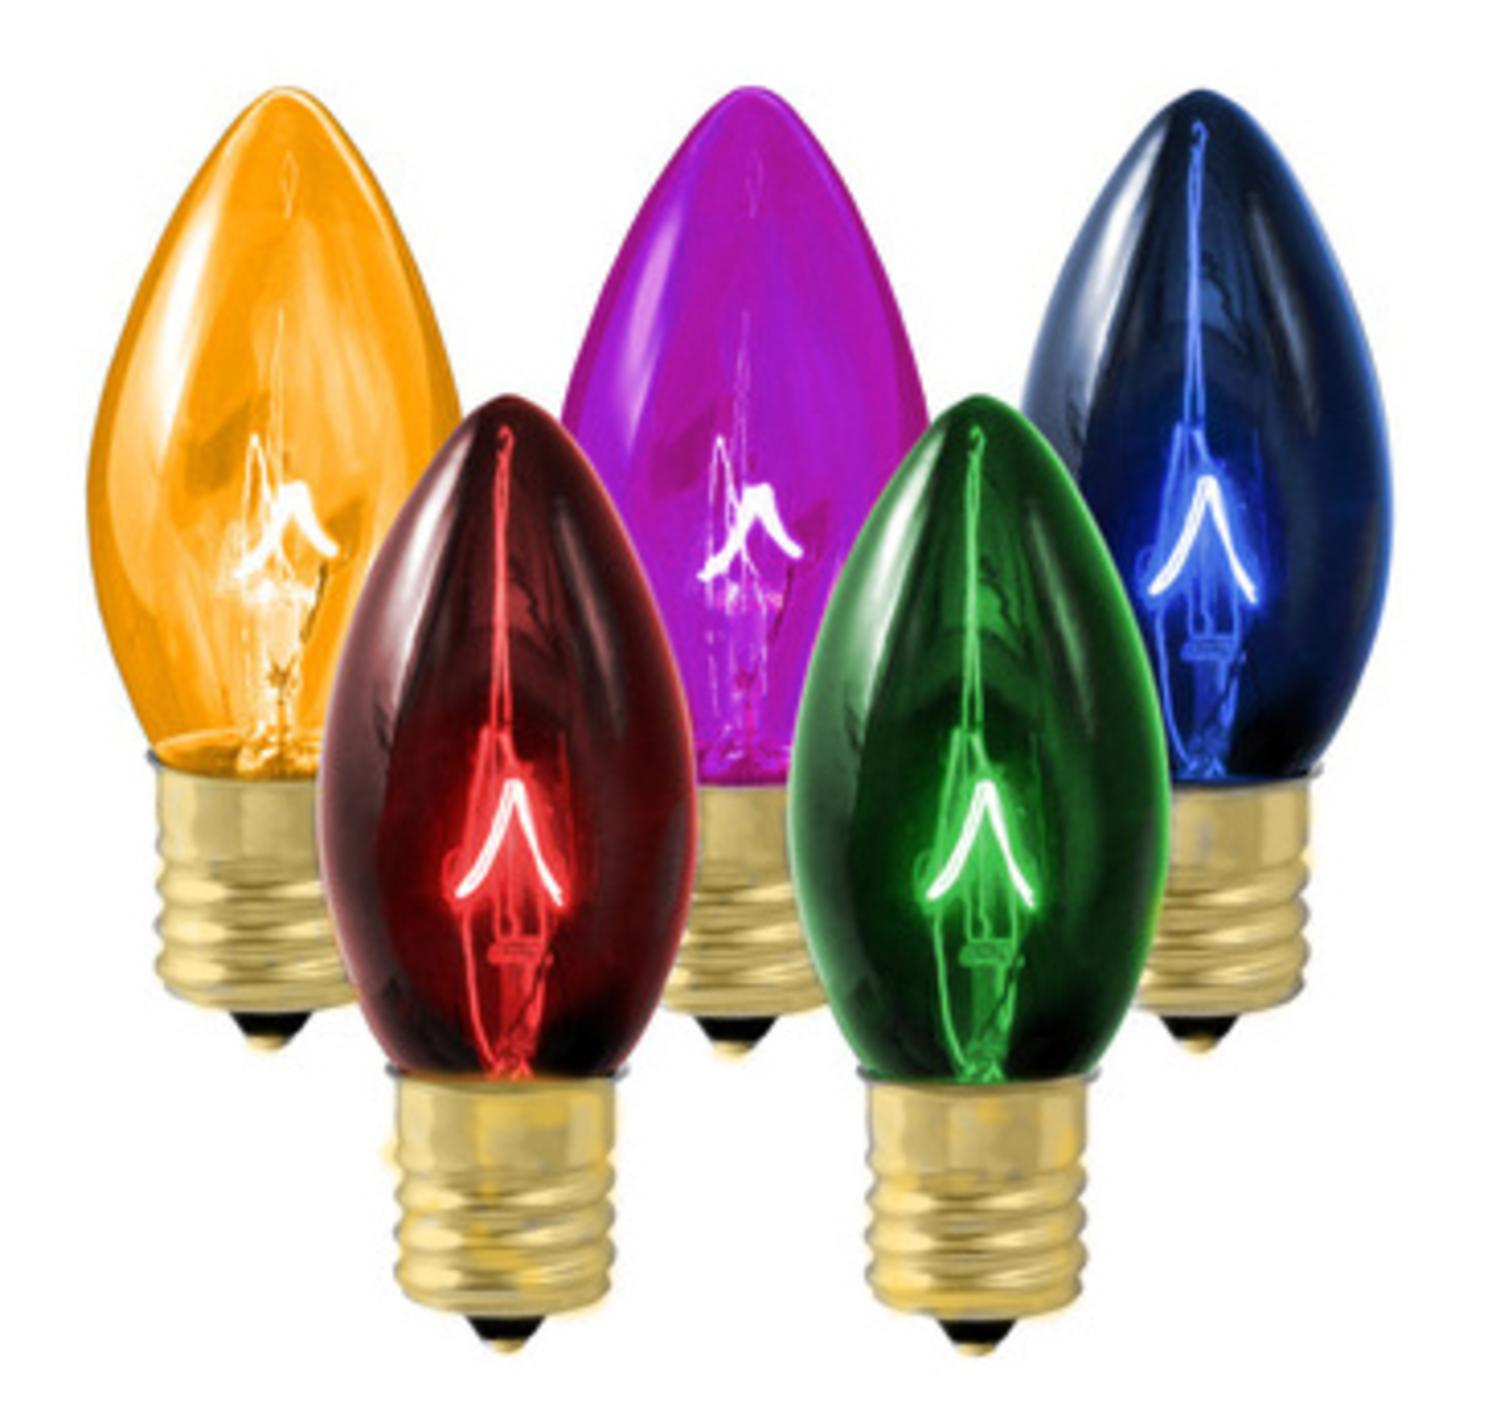 Club Pack of 100 Transparent Multi-Colored C7 Replacement Light Bulbs